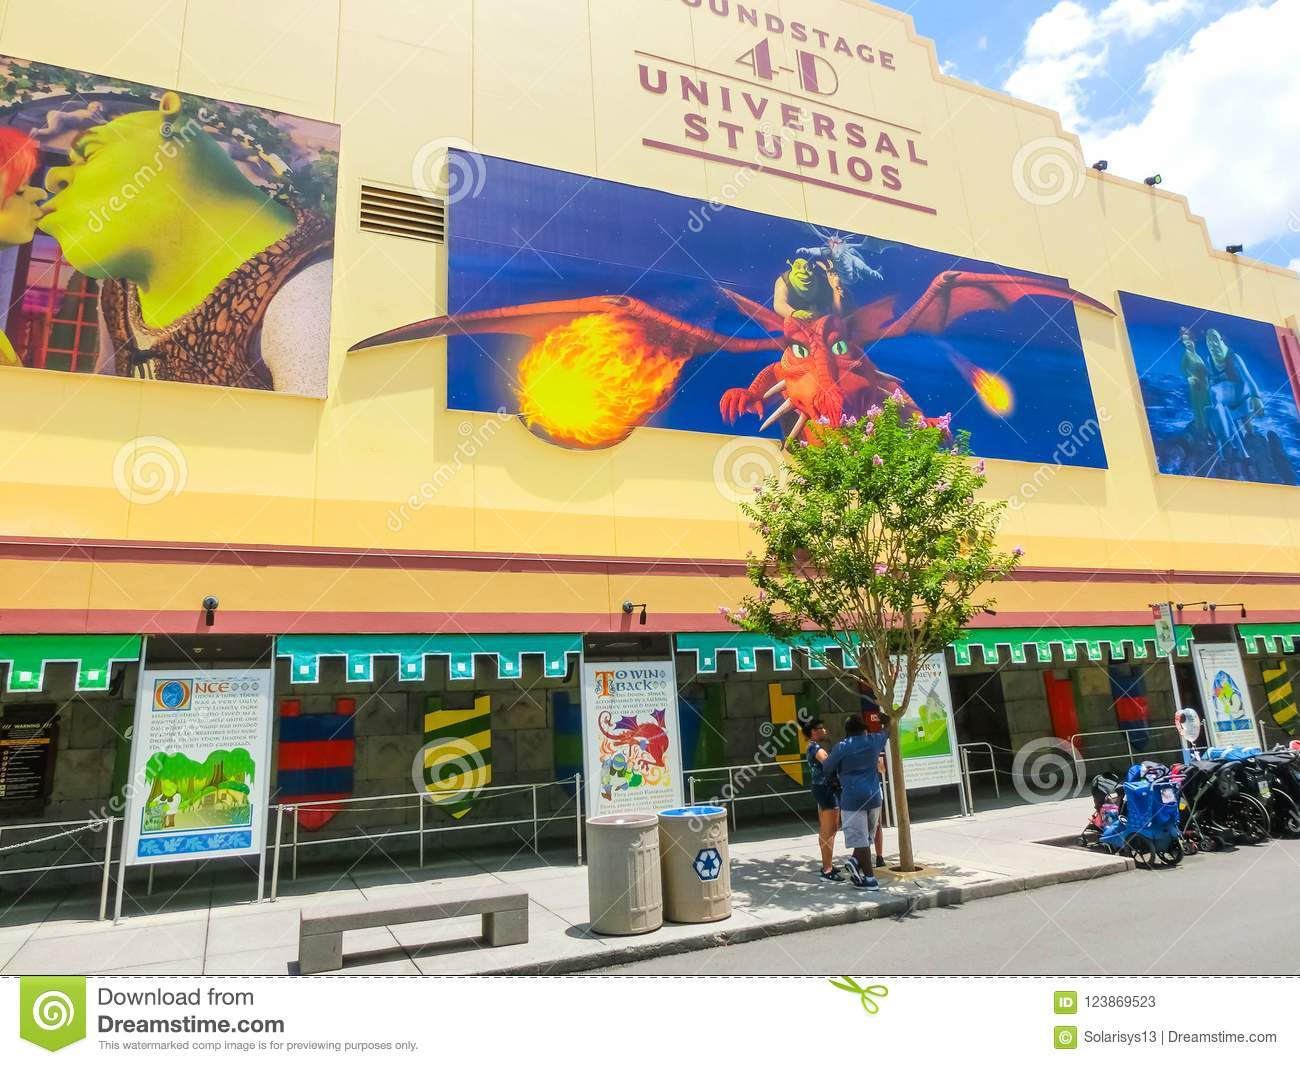 Orlando Florida Usa May 10 2018 The Entrance To Shrek 4d Ride In Soundstage Editorial Stock Photo Image Of Editorial Fantasy 123869523